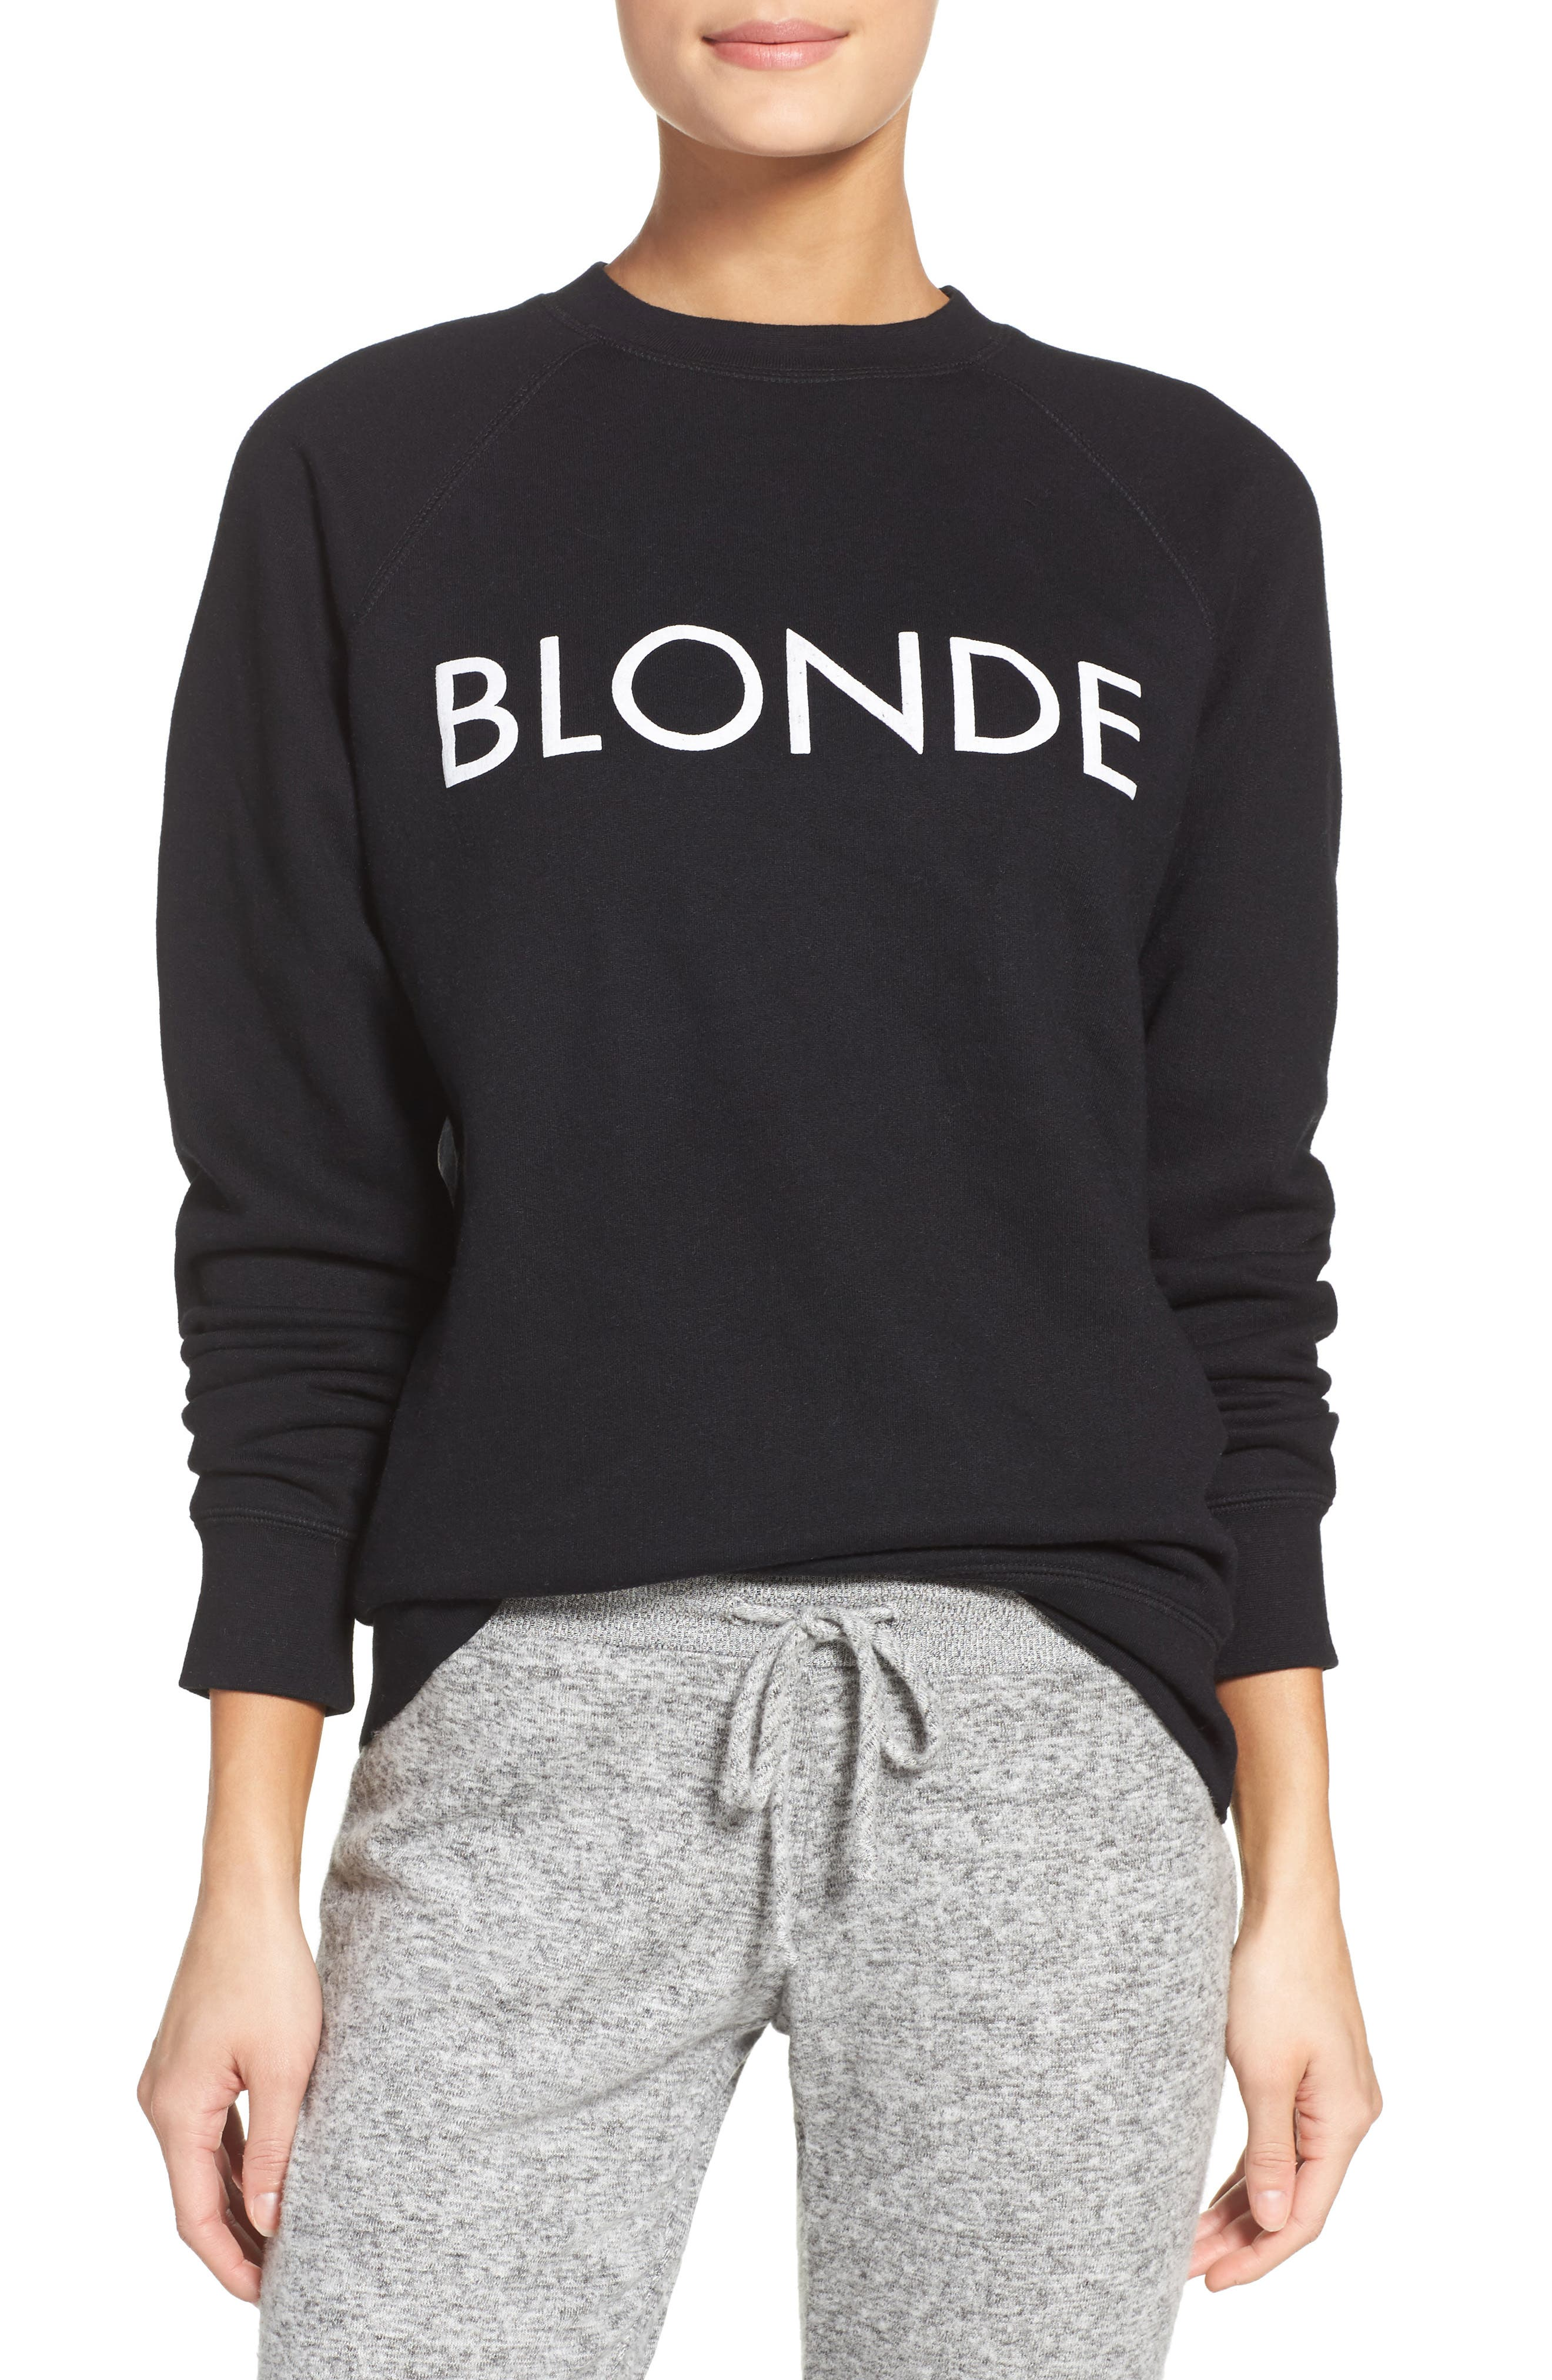 Alternate Image 1 Selected - BRUNETTE the Label Blonde Crewneck Sweatshirt